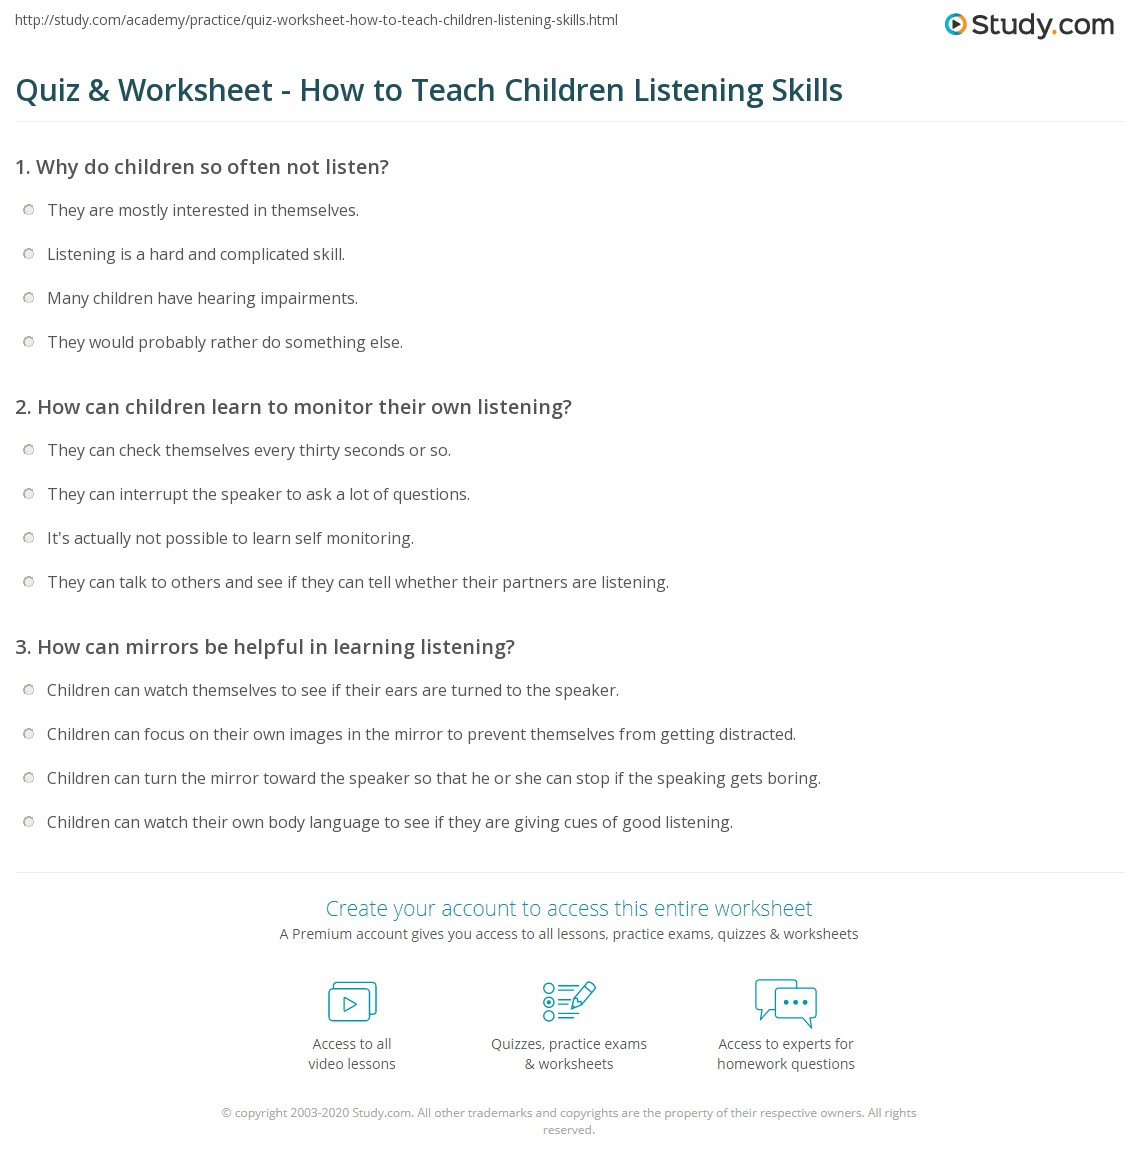 Workbooks special education life skills worksheets : Quiz & Worksheet - How to Teach Children Listening Skills | Study.com